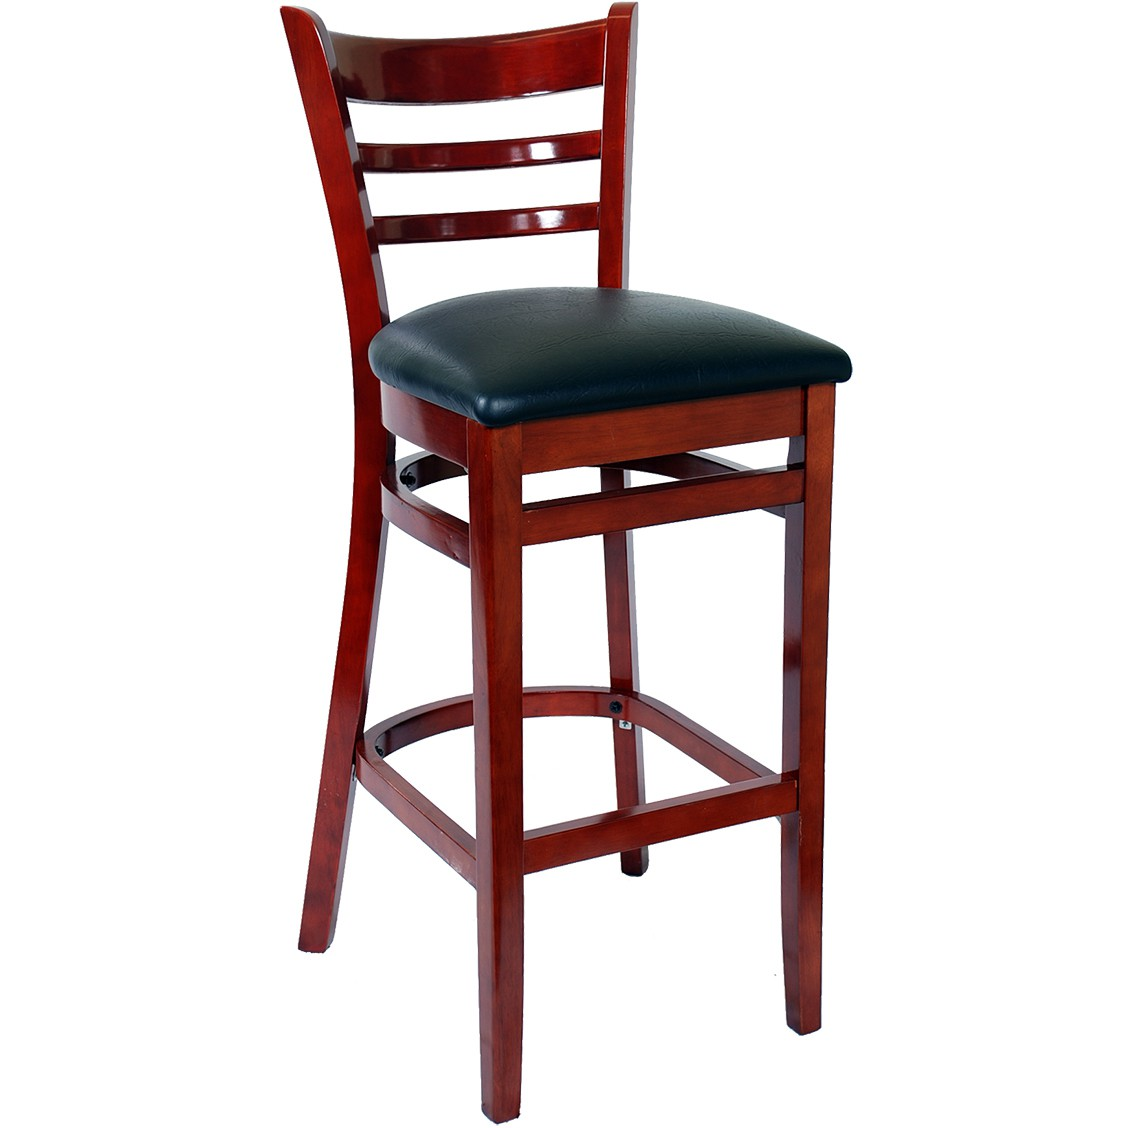 Ladder Back Bar Stool Mahogany Finish With A Black Vinyl Seat